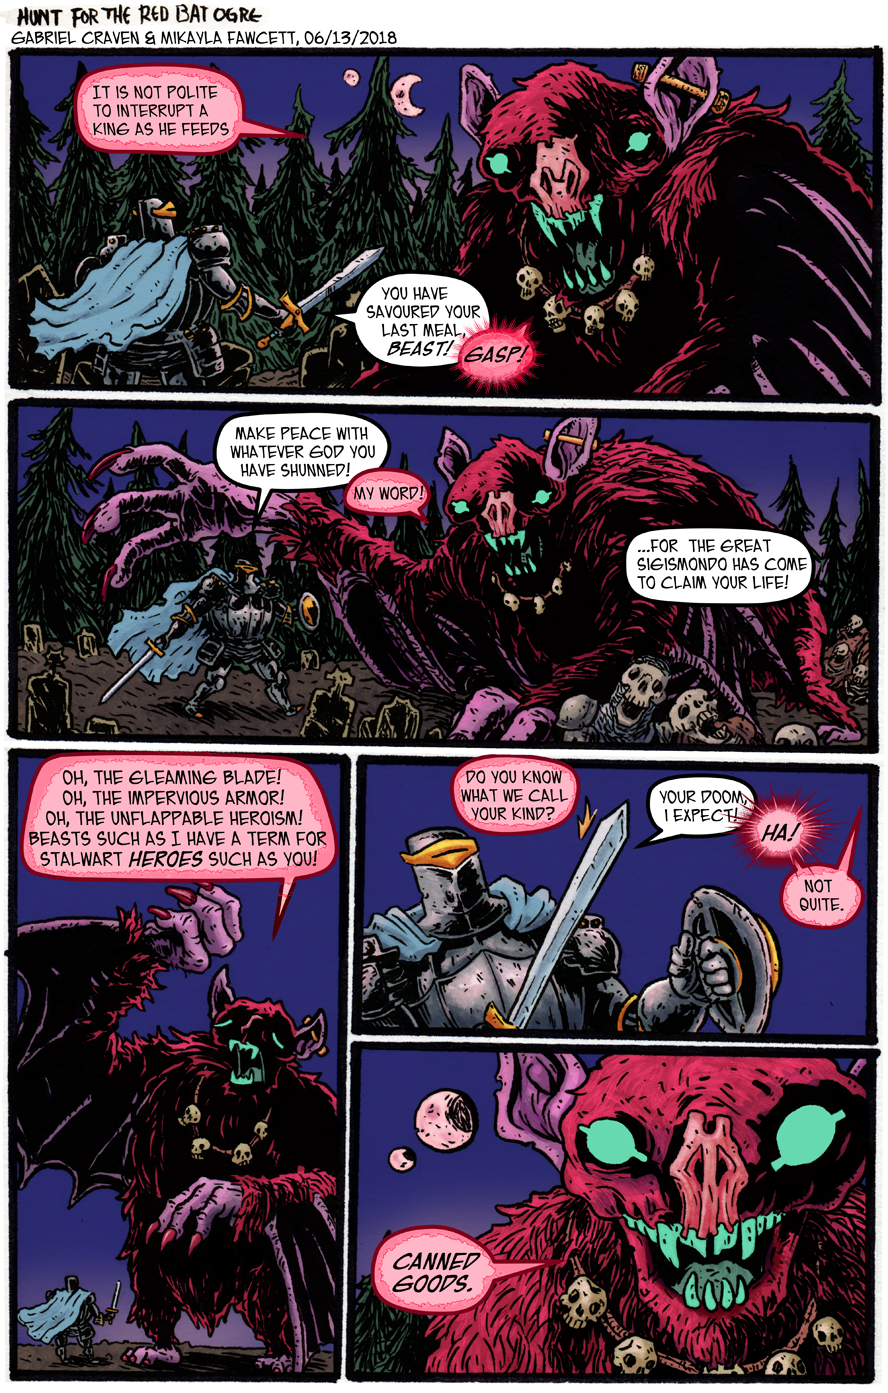 The Hunt for the Red Bat Ogre